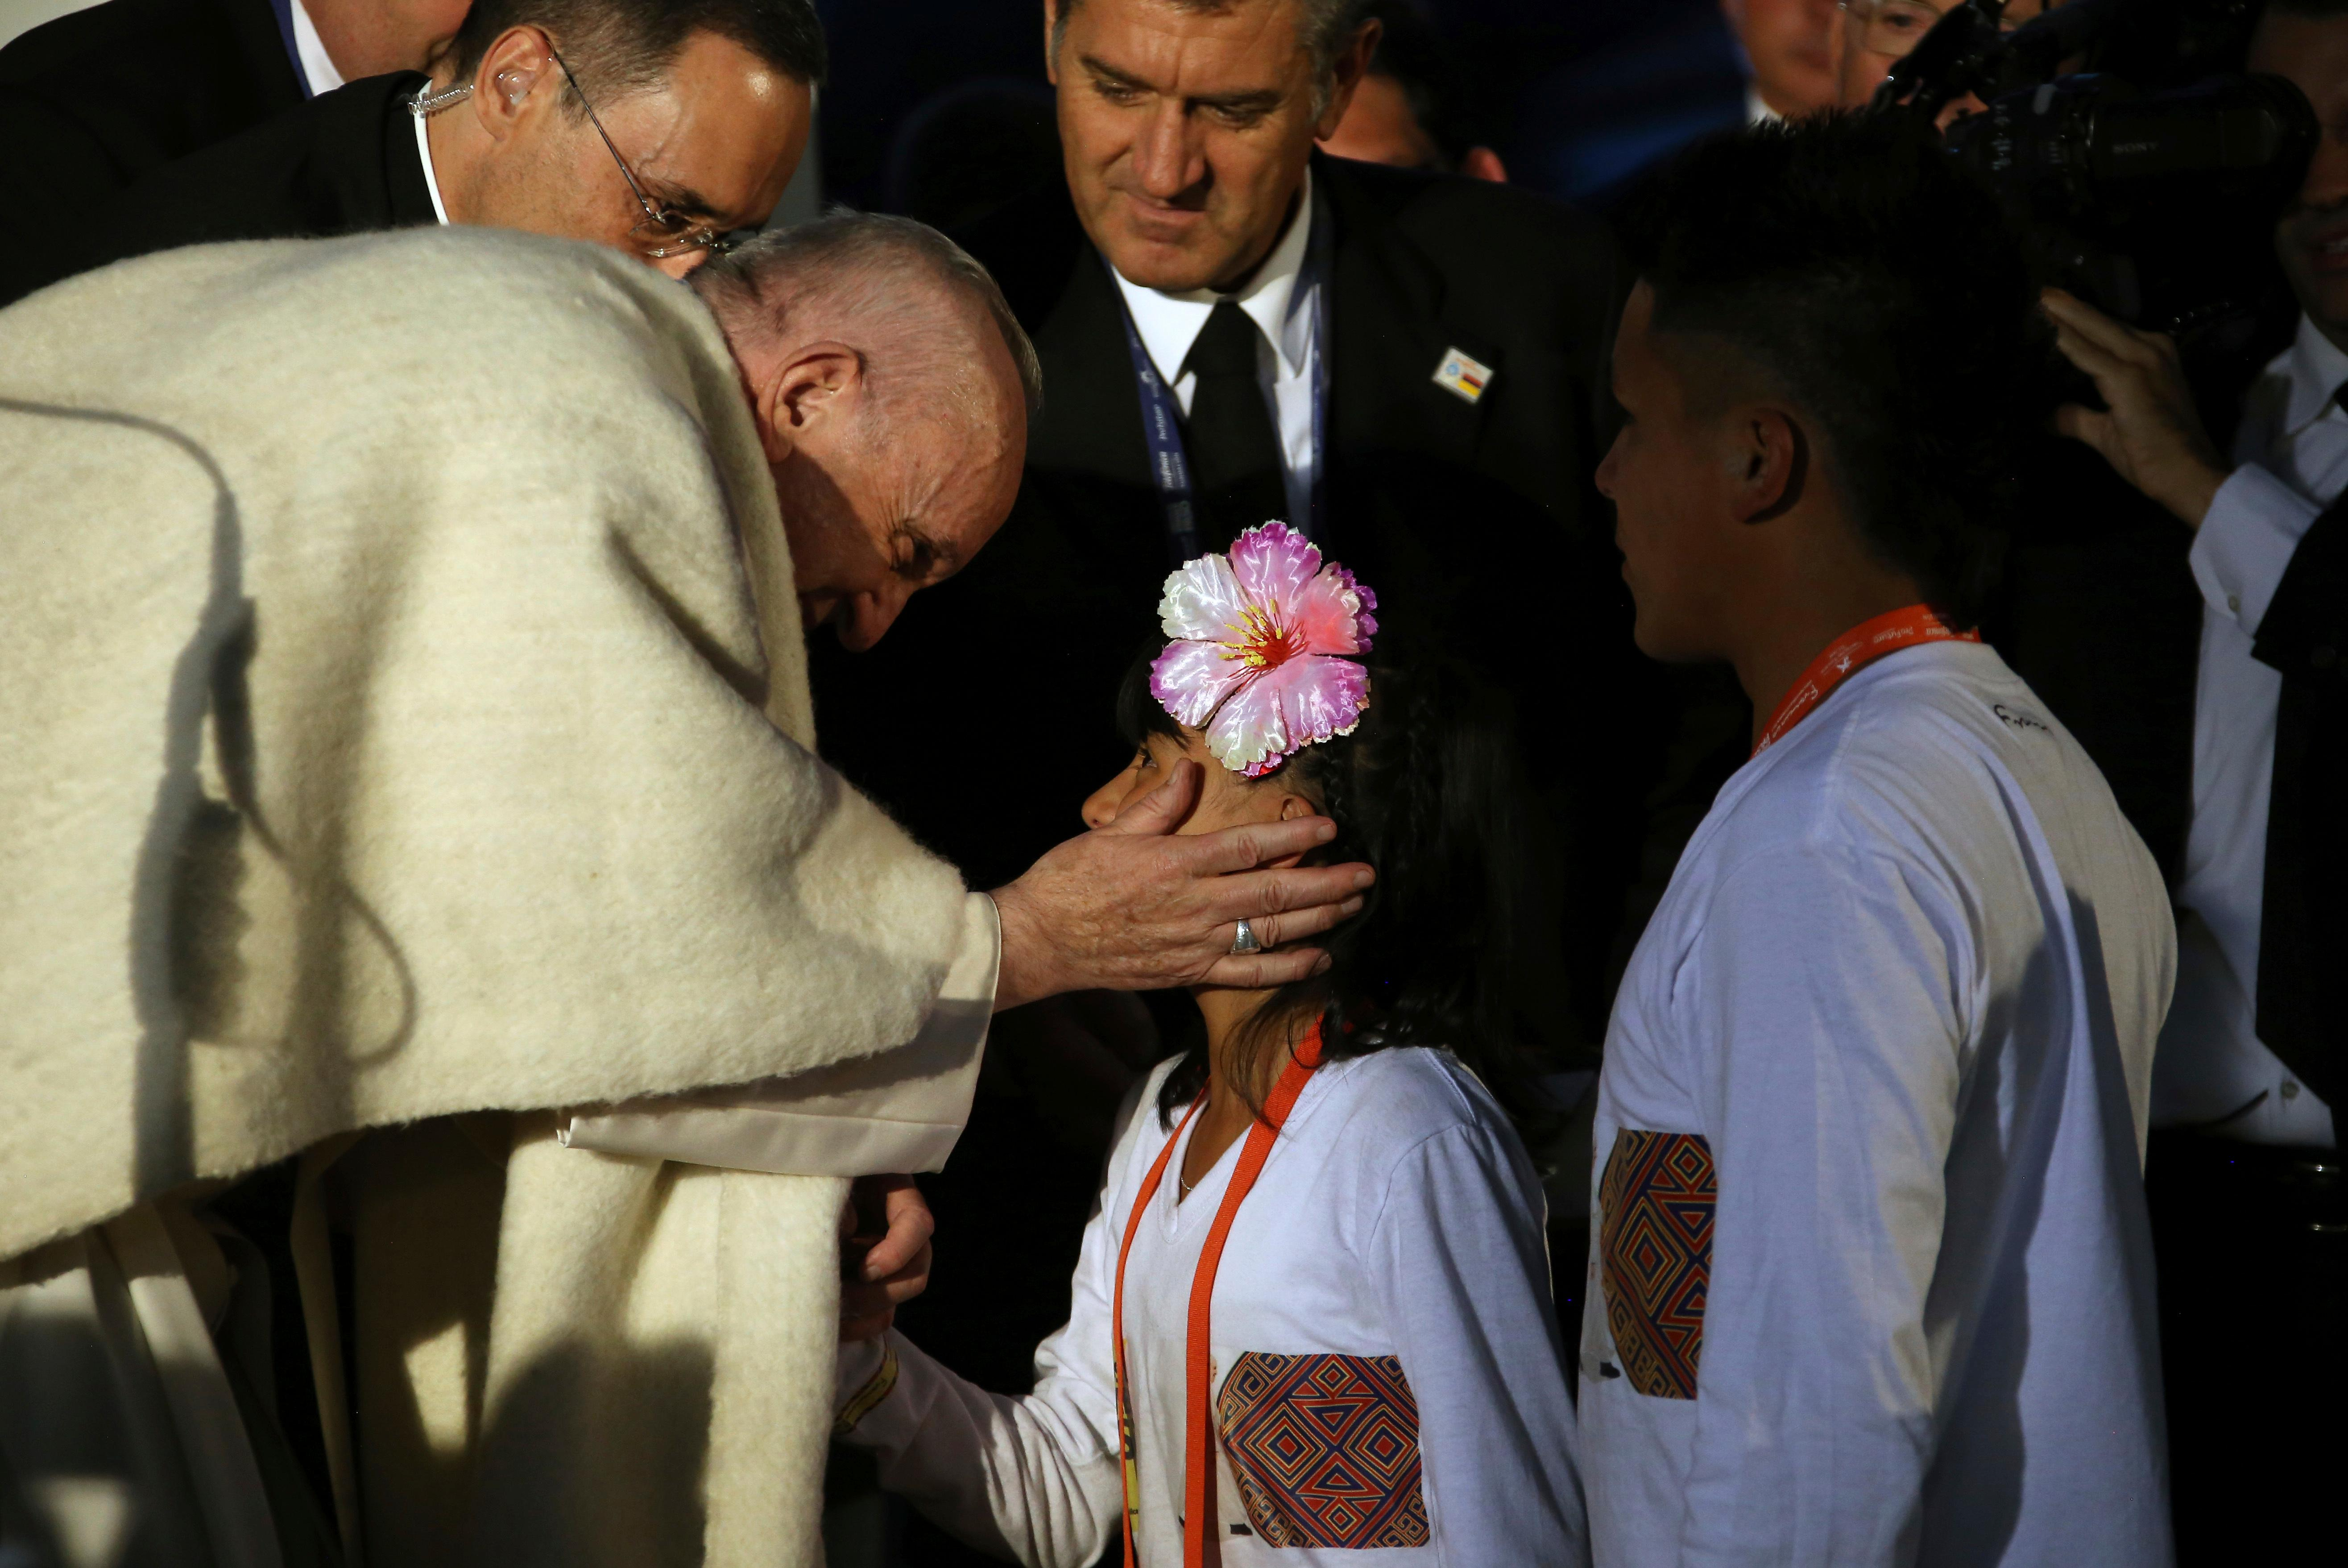 Pope Francis greets a child during his welcoming ceremony at the Nunciature in Bogota, Colombia, Wednesday, Sept. 6, 2017. Pope Francis has arrived in Colombia for a five-day visit. (AP Photo/Ivan Valencia)